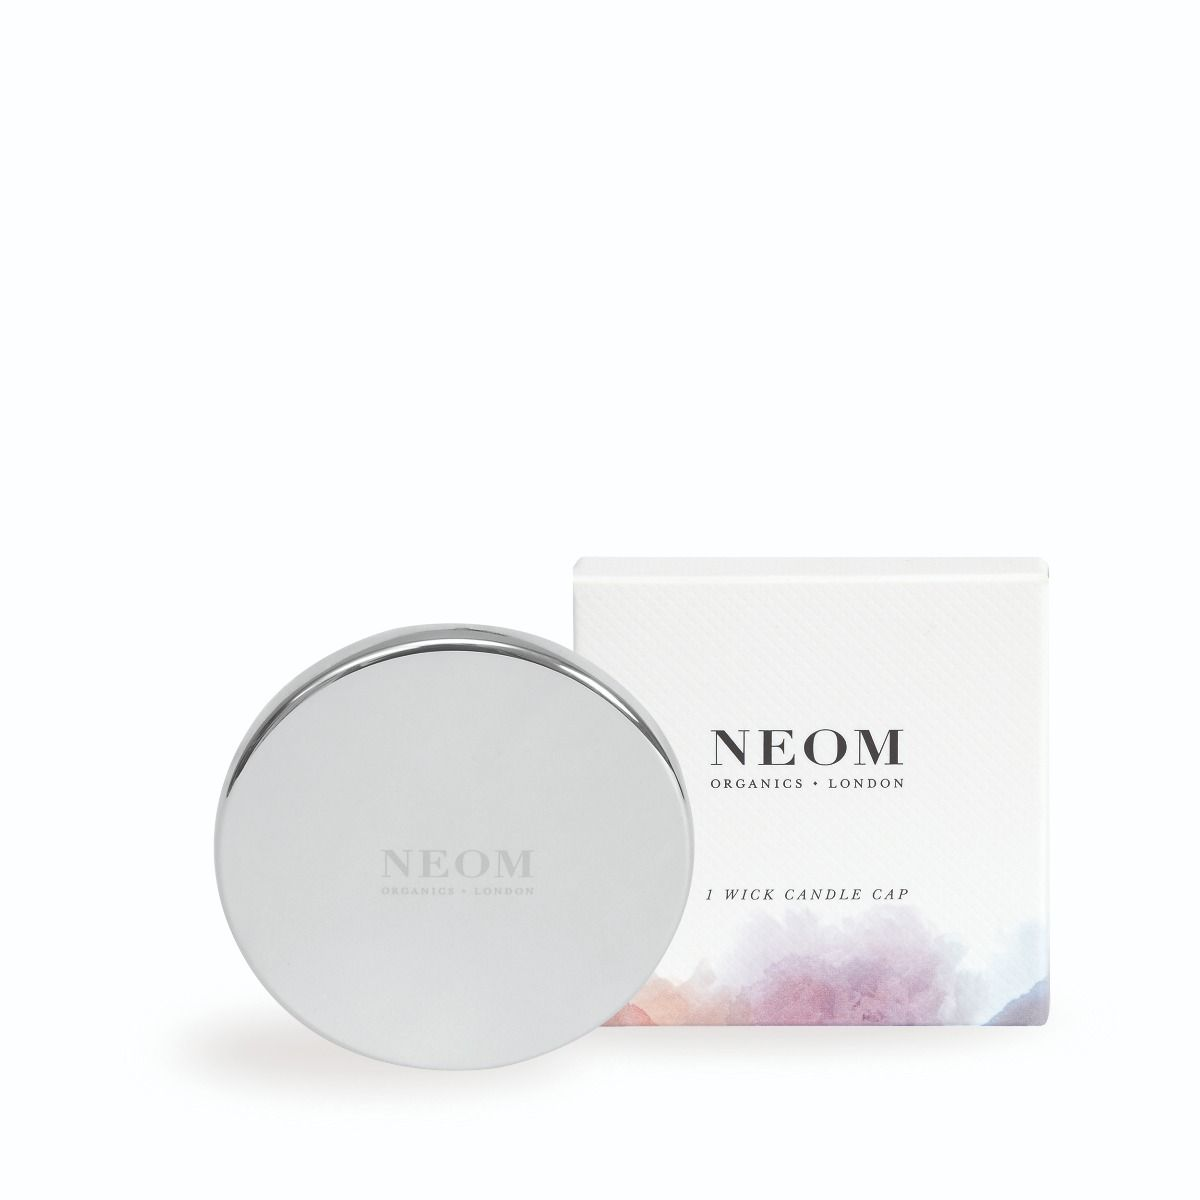 NEOM Candle Cap 1 Wick